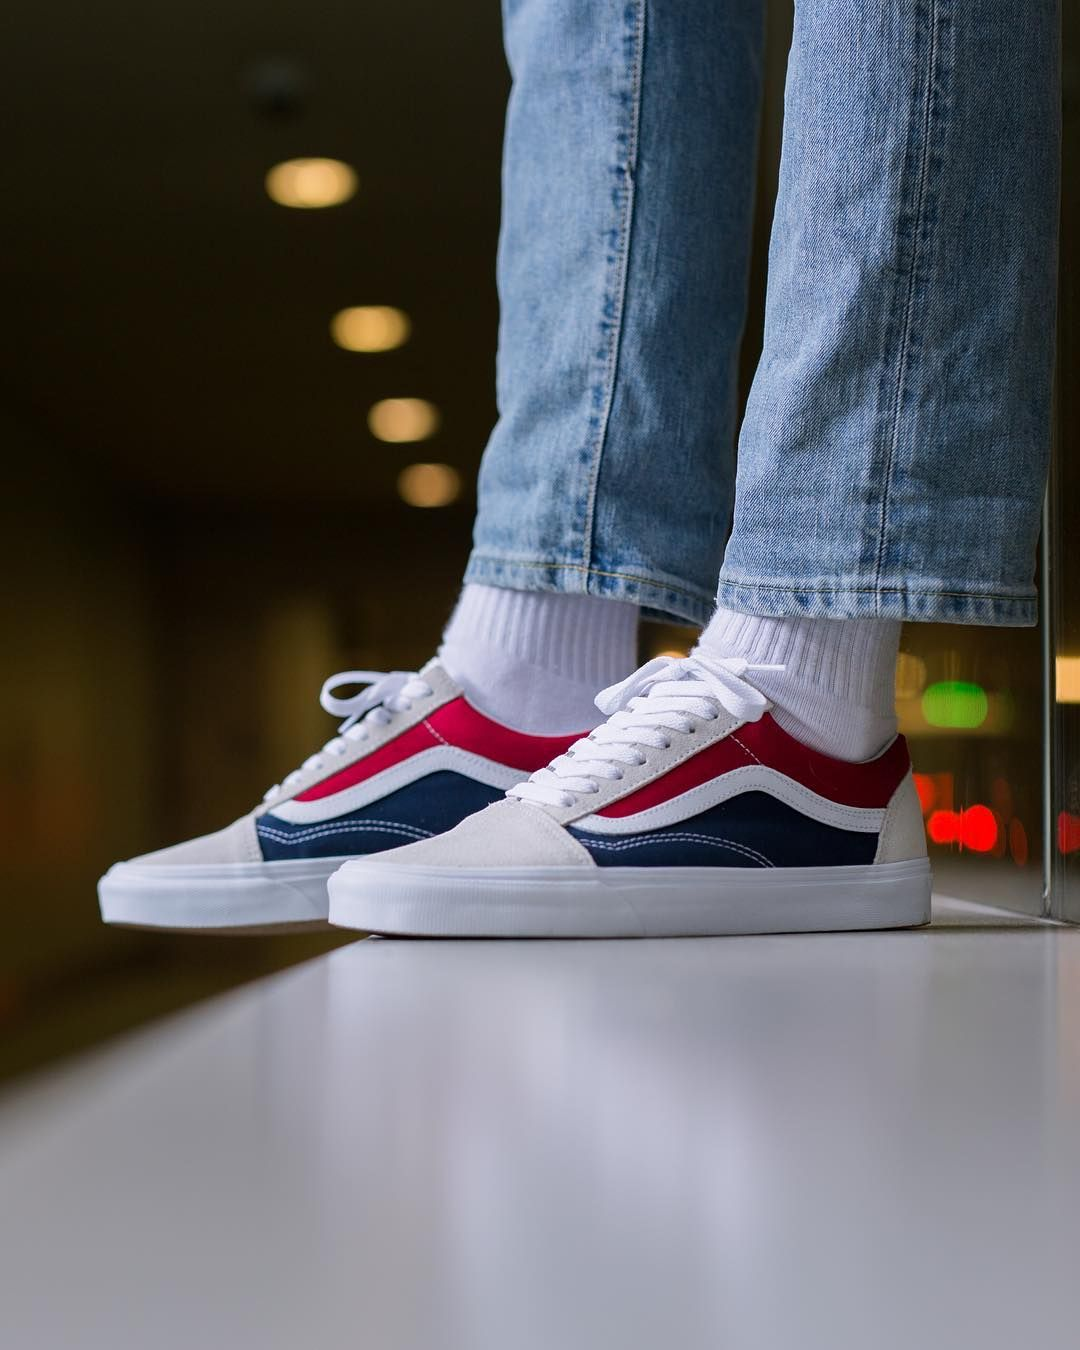 7364f816a626 Vans Old Skool - White Red Dress Blue